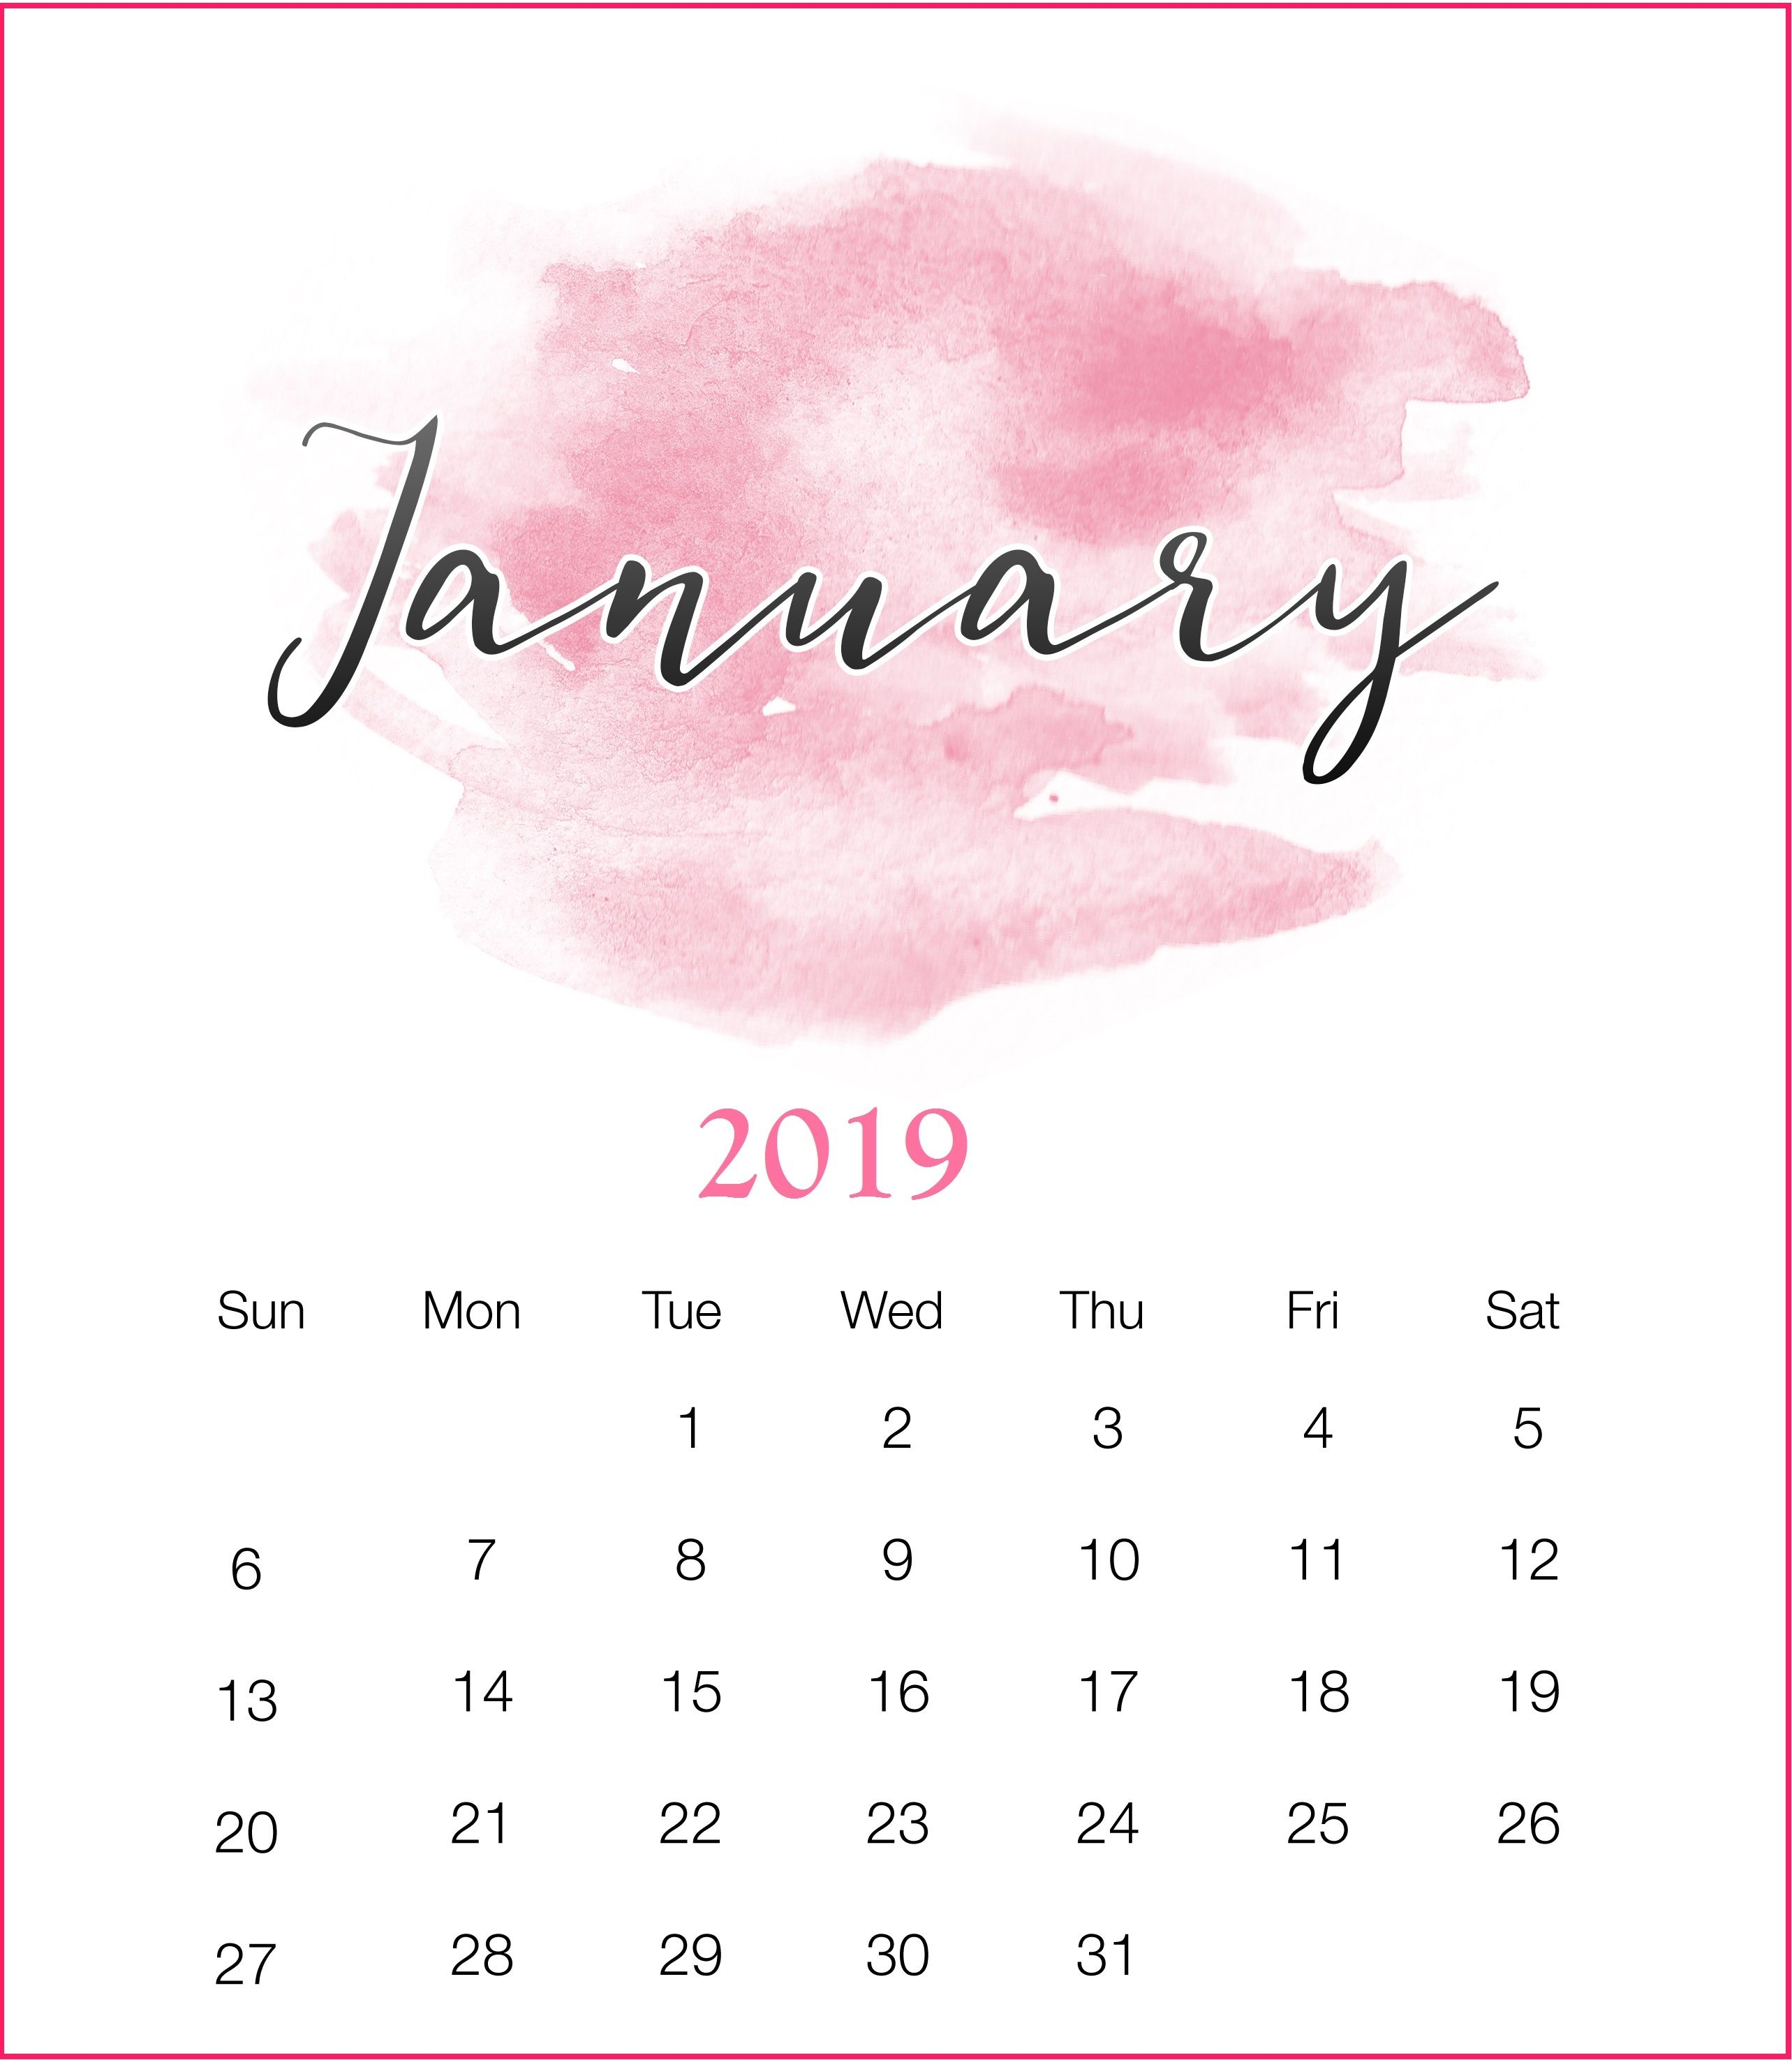 watercolor 2019 january printable calendar january2019 watercolor::January 2019 Calendar Templates